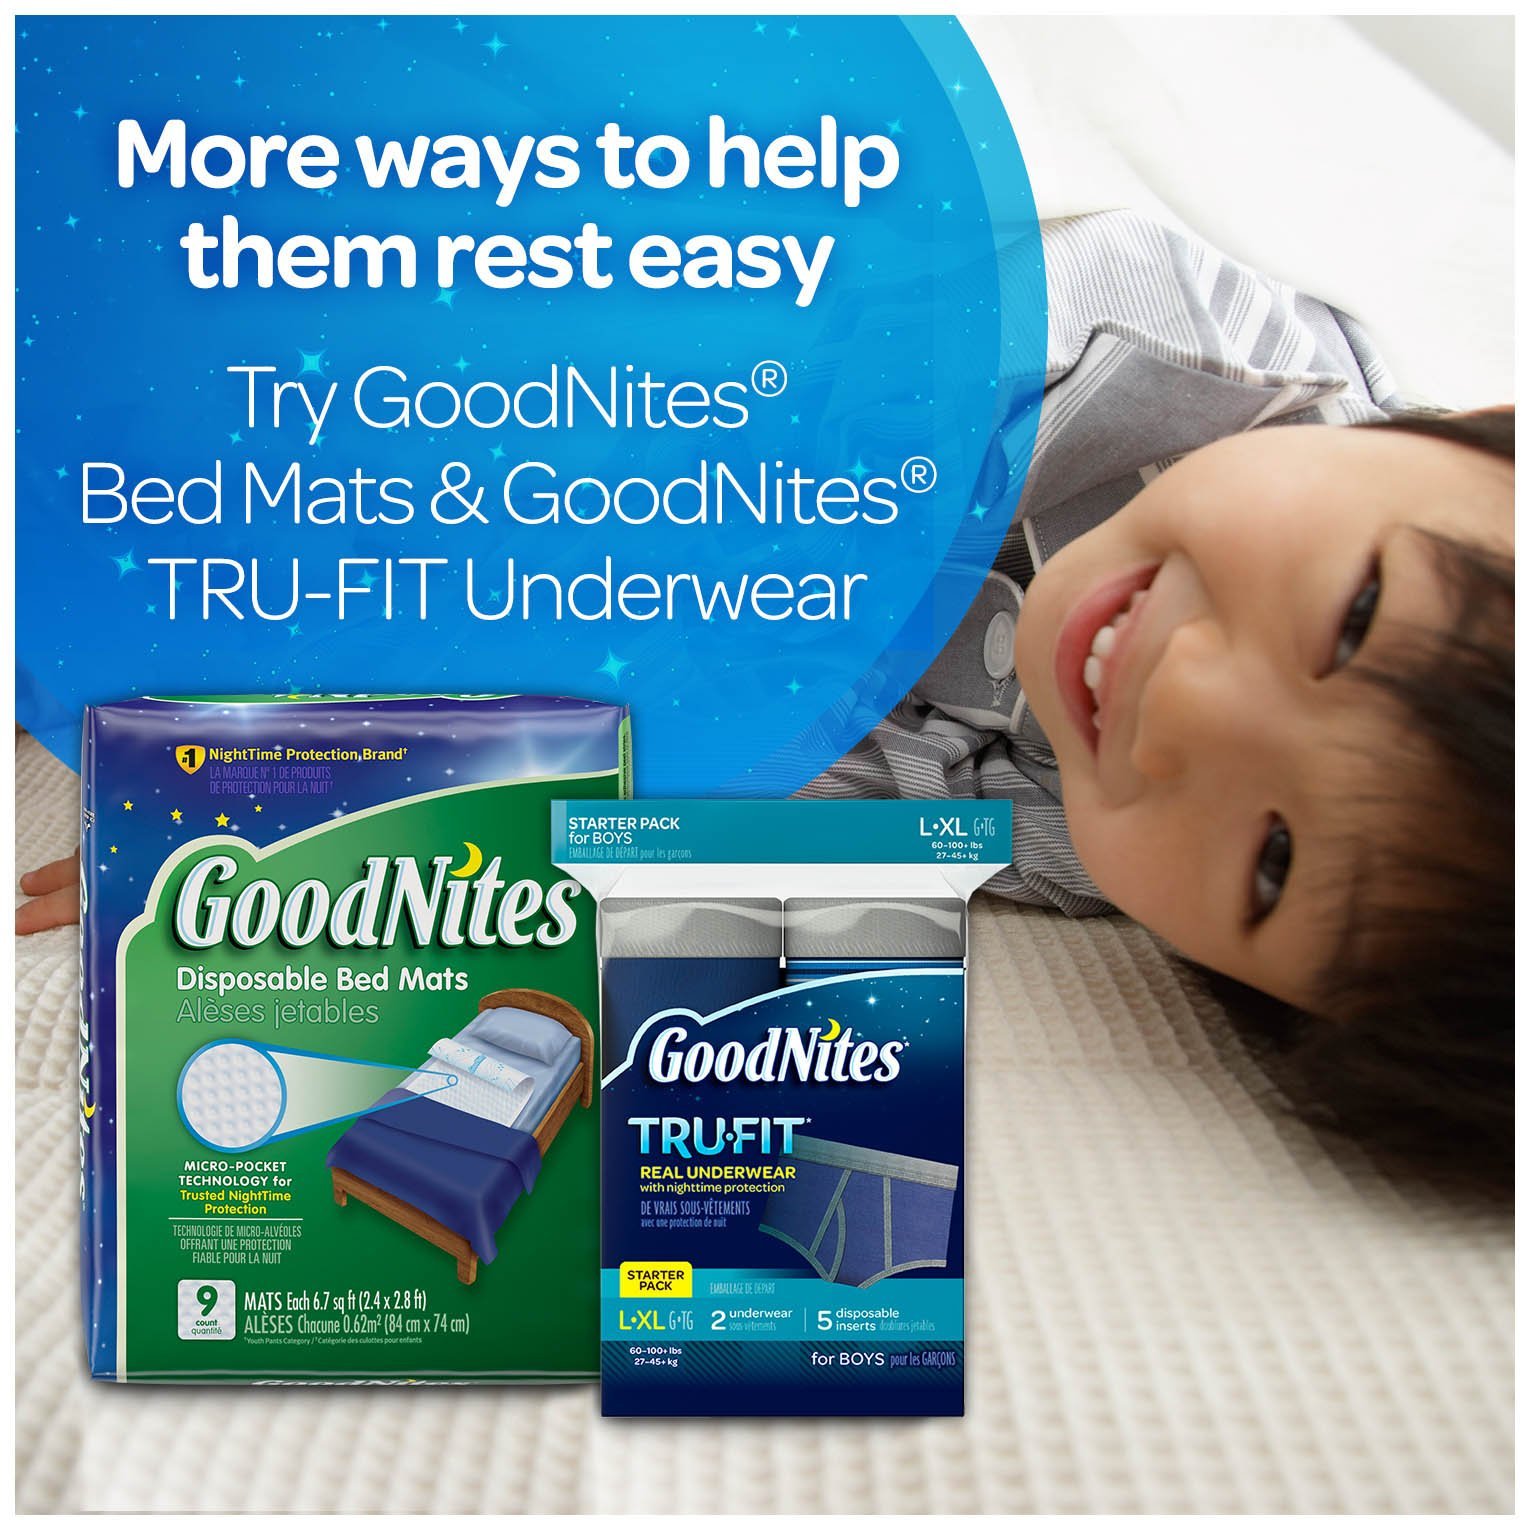 GoodNites Bedtime Bedwetting Underwear for Boys, S-M (38-65 lb), 44 Ct. (Packaging May Vary) by GoodNites (Image #11)